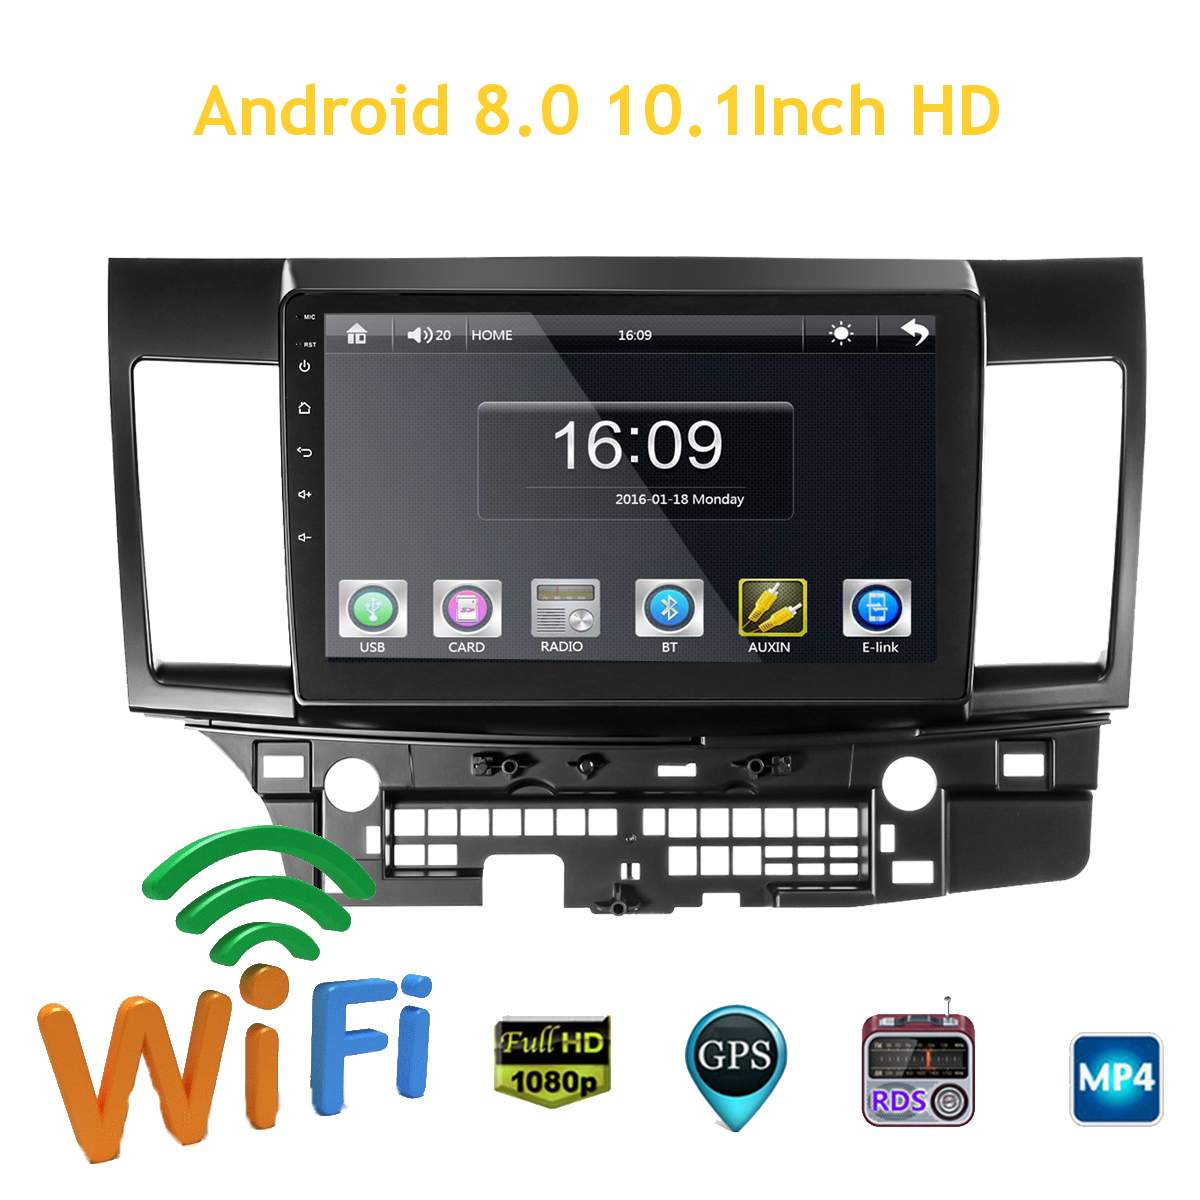 10.1 Inch 2 DIN for Android 8.0 Car Stereo 2+32G Quad Core MP5 Player GPS WIFI FM AM Radio for Mitsubishi Lancer Car Multimedia image